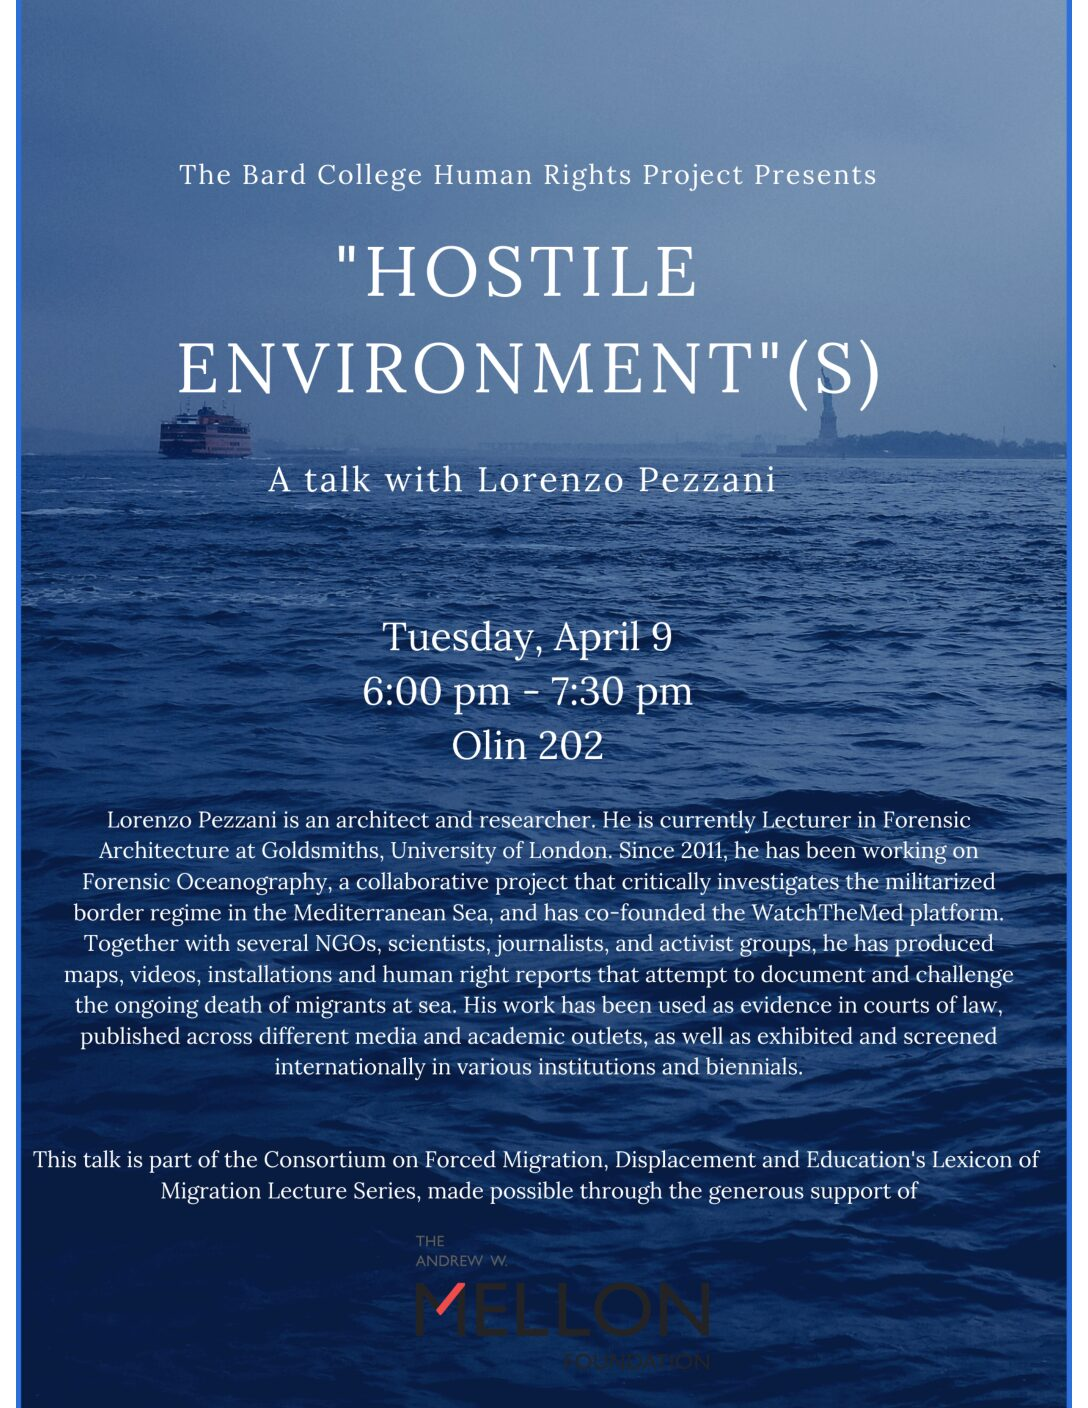 Hostile Environments: A talk with Lorenzo Pezzani of Forensic